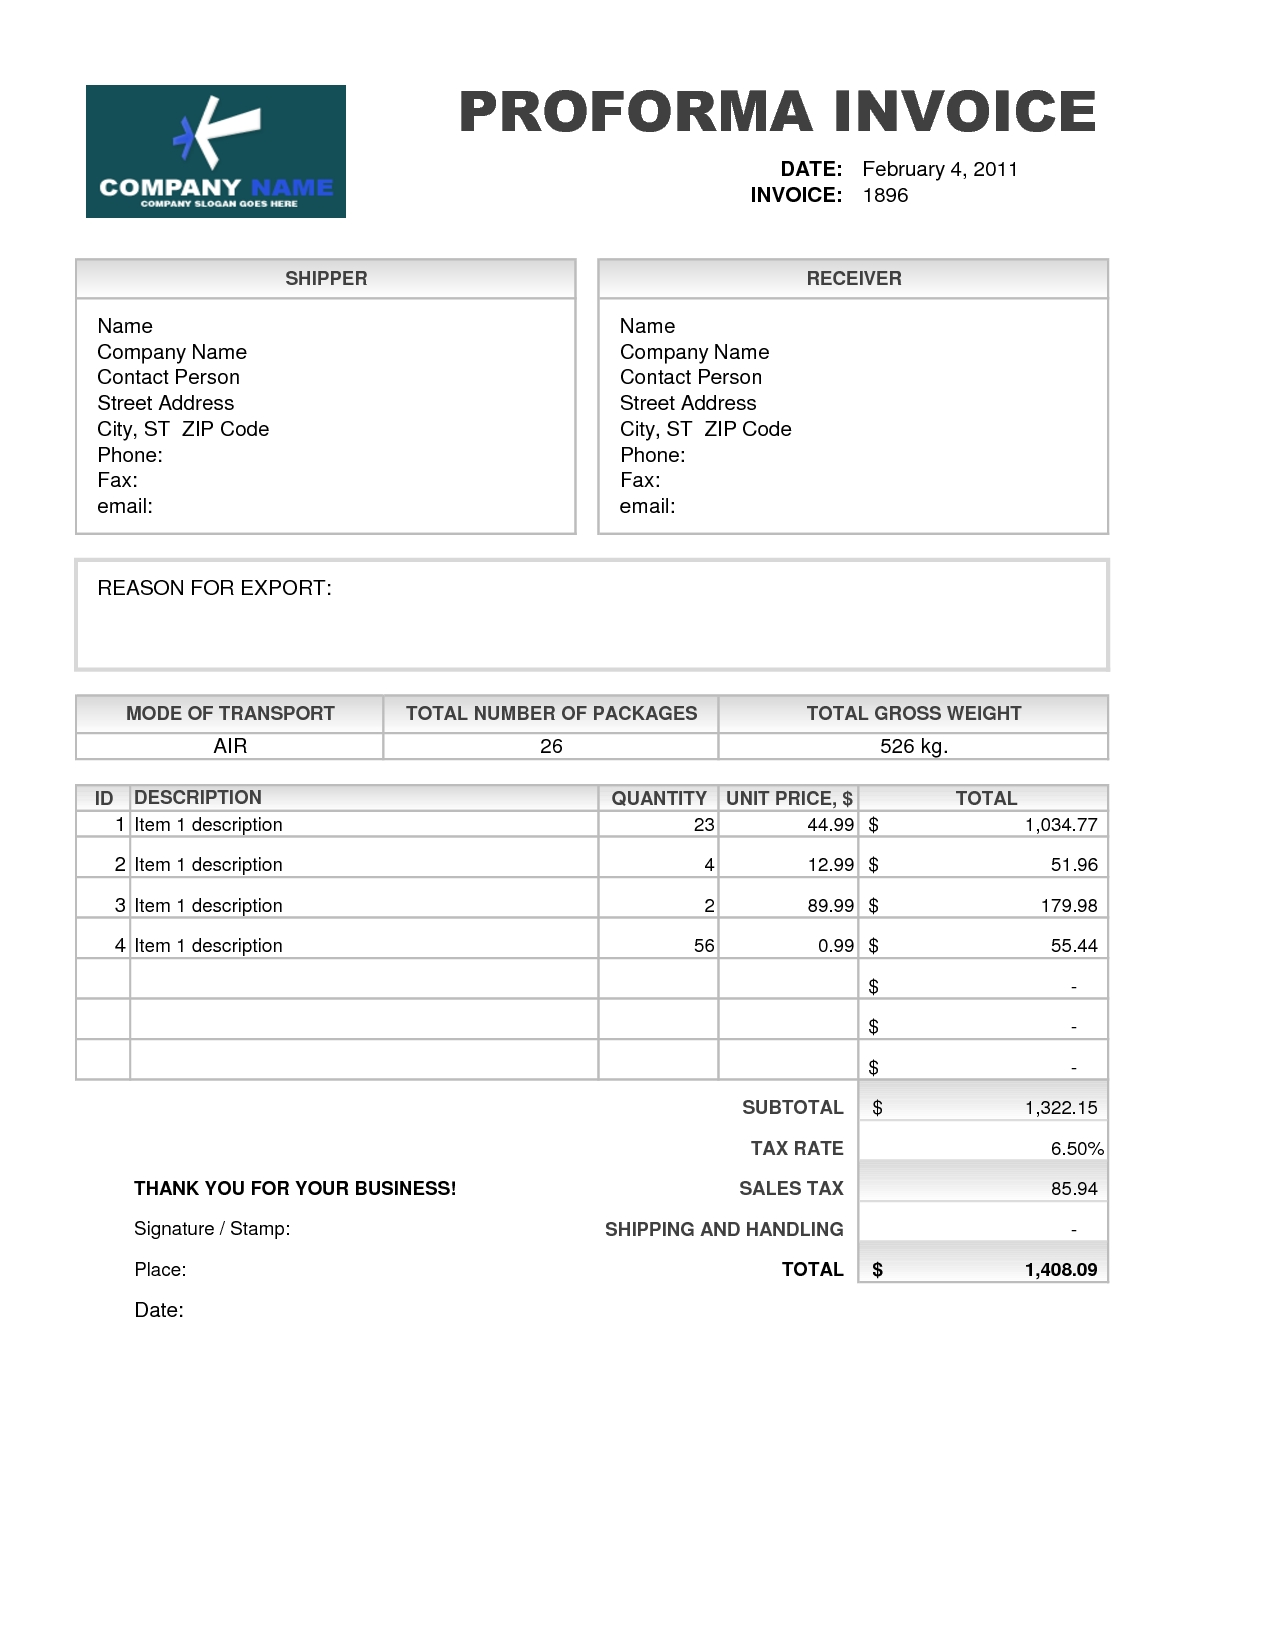 performance invoice format 7 performance invoice template example 2017 sample4proforma pr mdxar 1275 X 1650